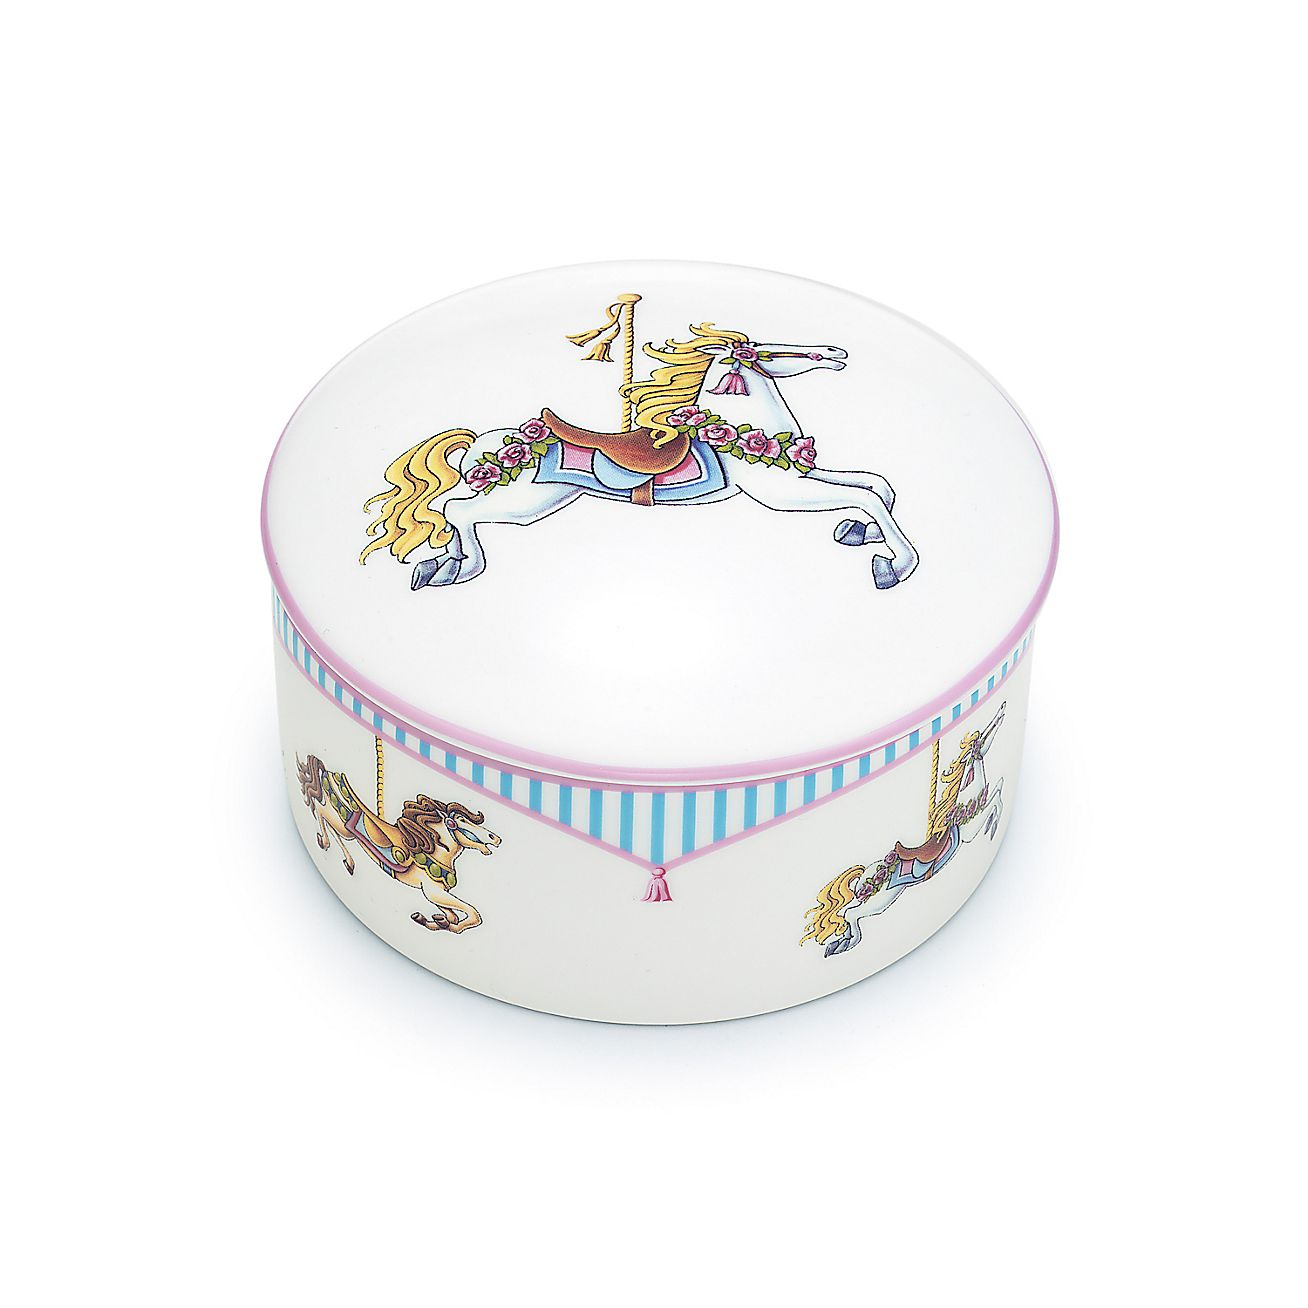 Tiffany Baby Gifts Australia : Tiffany carousel round box in limoges porcelain